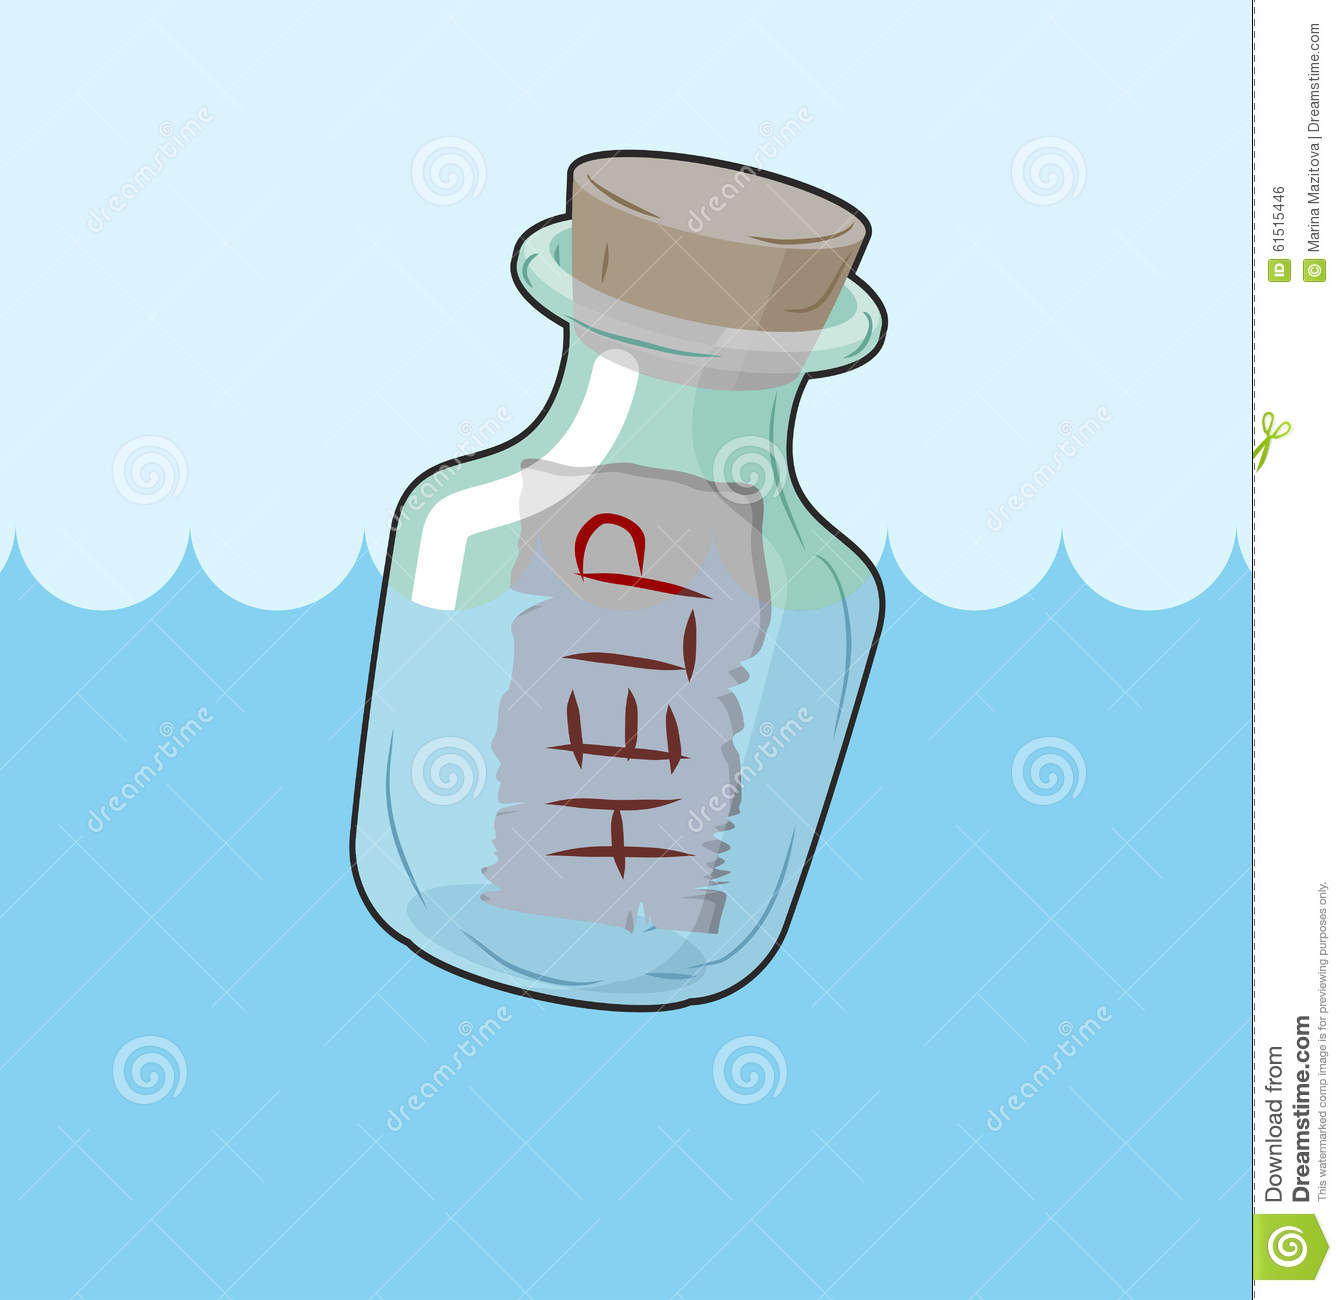 Transparent Bottle With Text Help On Sand. Glass Vessel With.